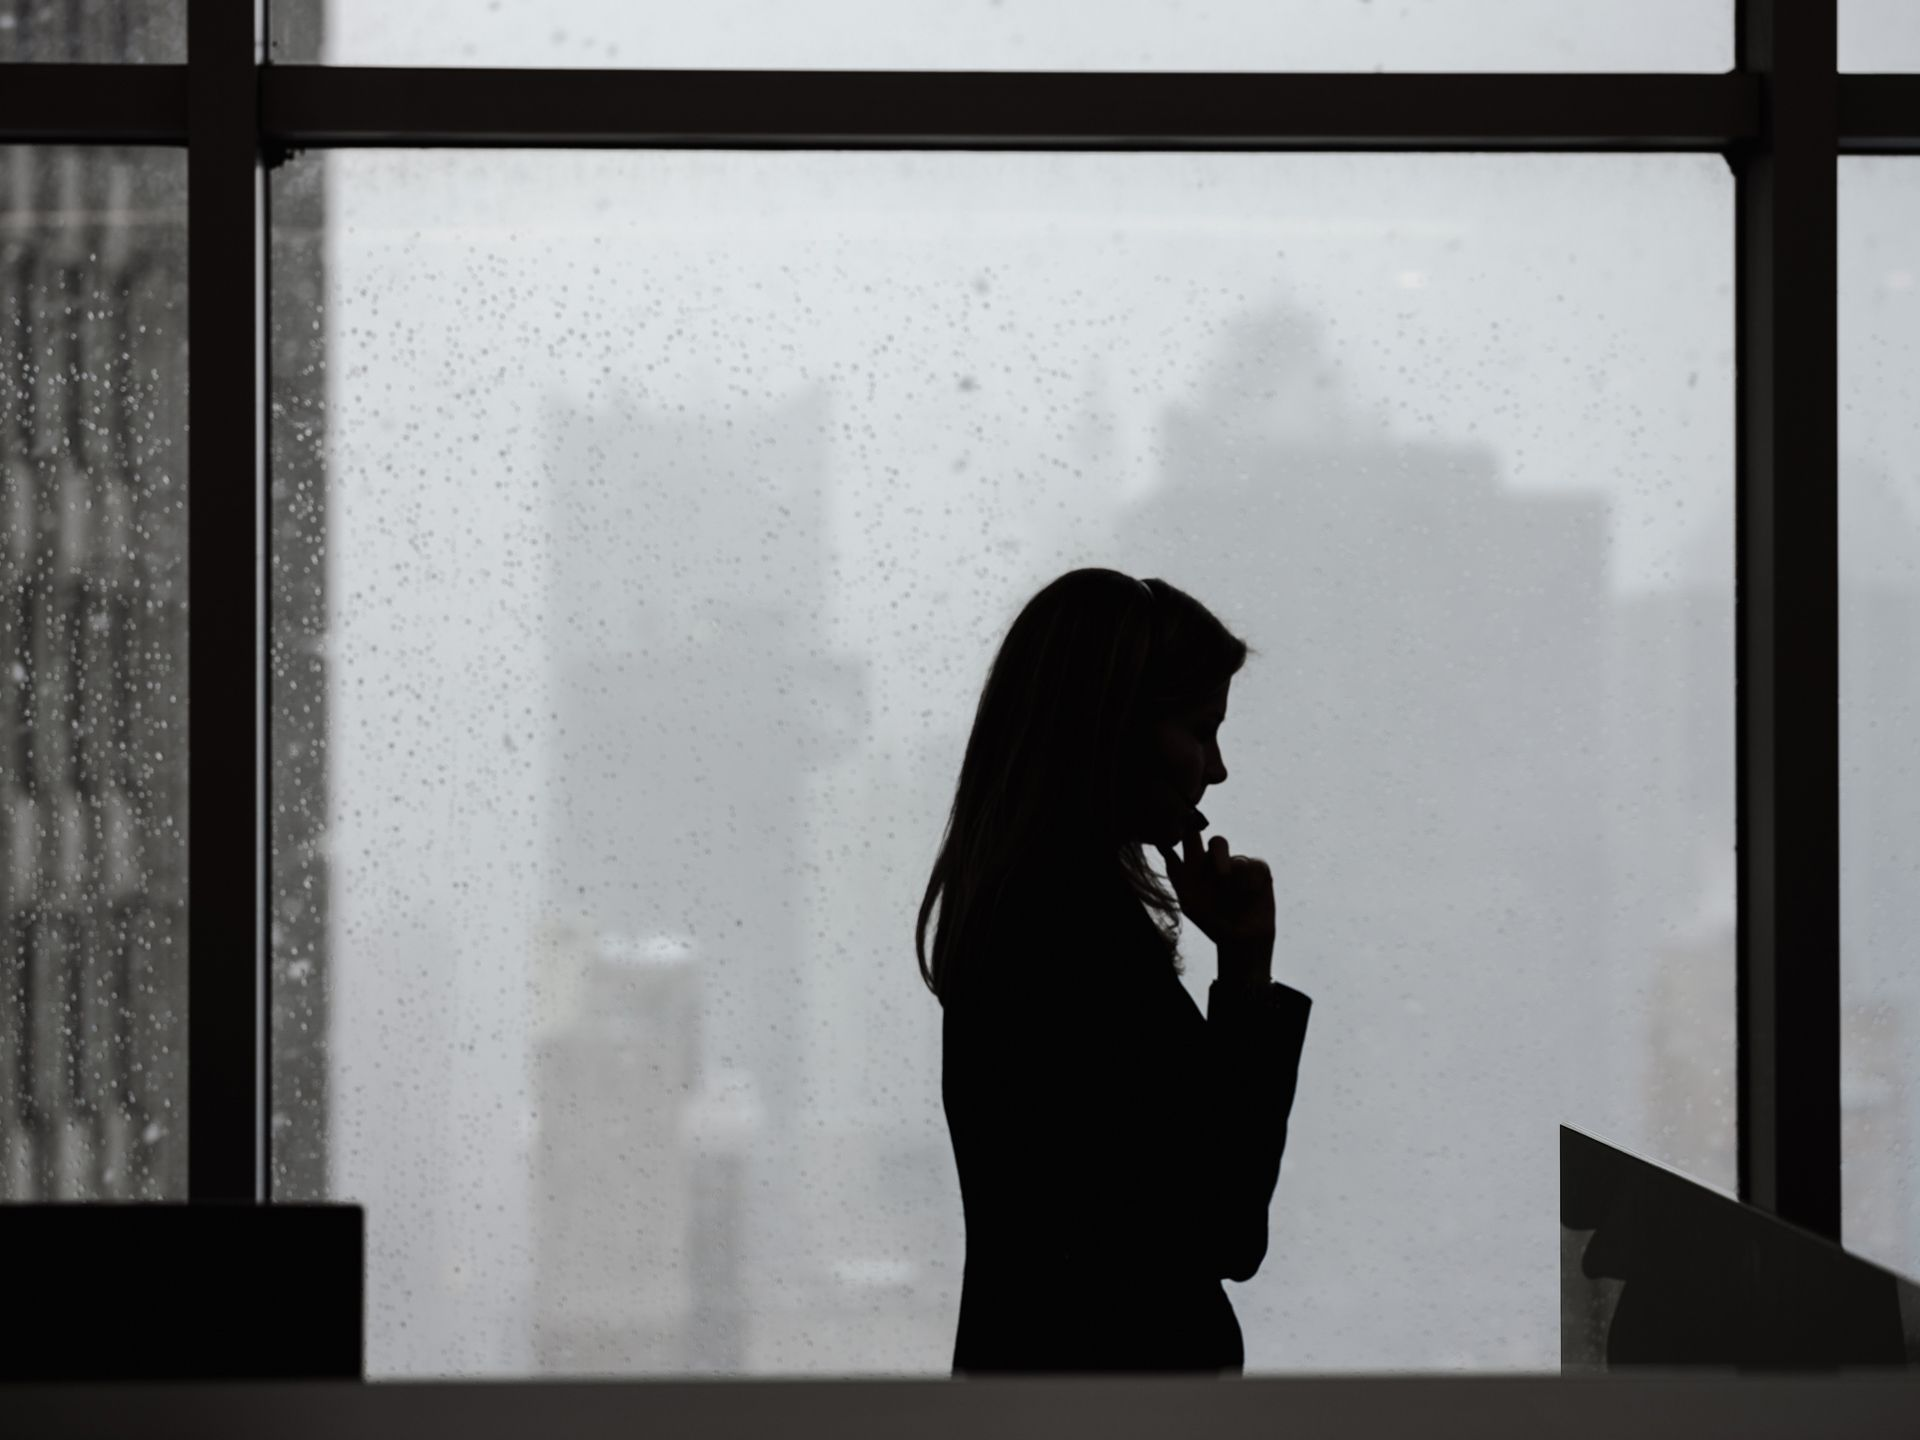 silhouette of women on the phone in a window splattered with rain by Alexi Hobbs for PSP